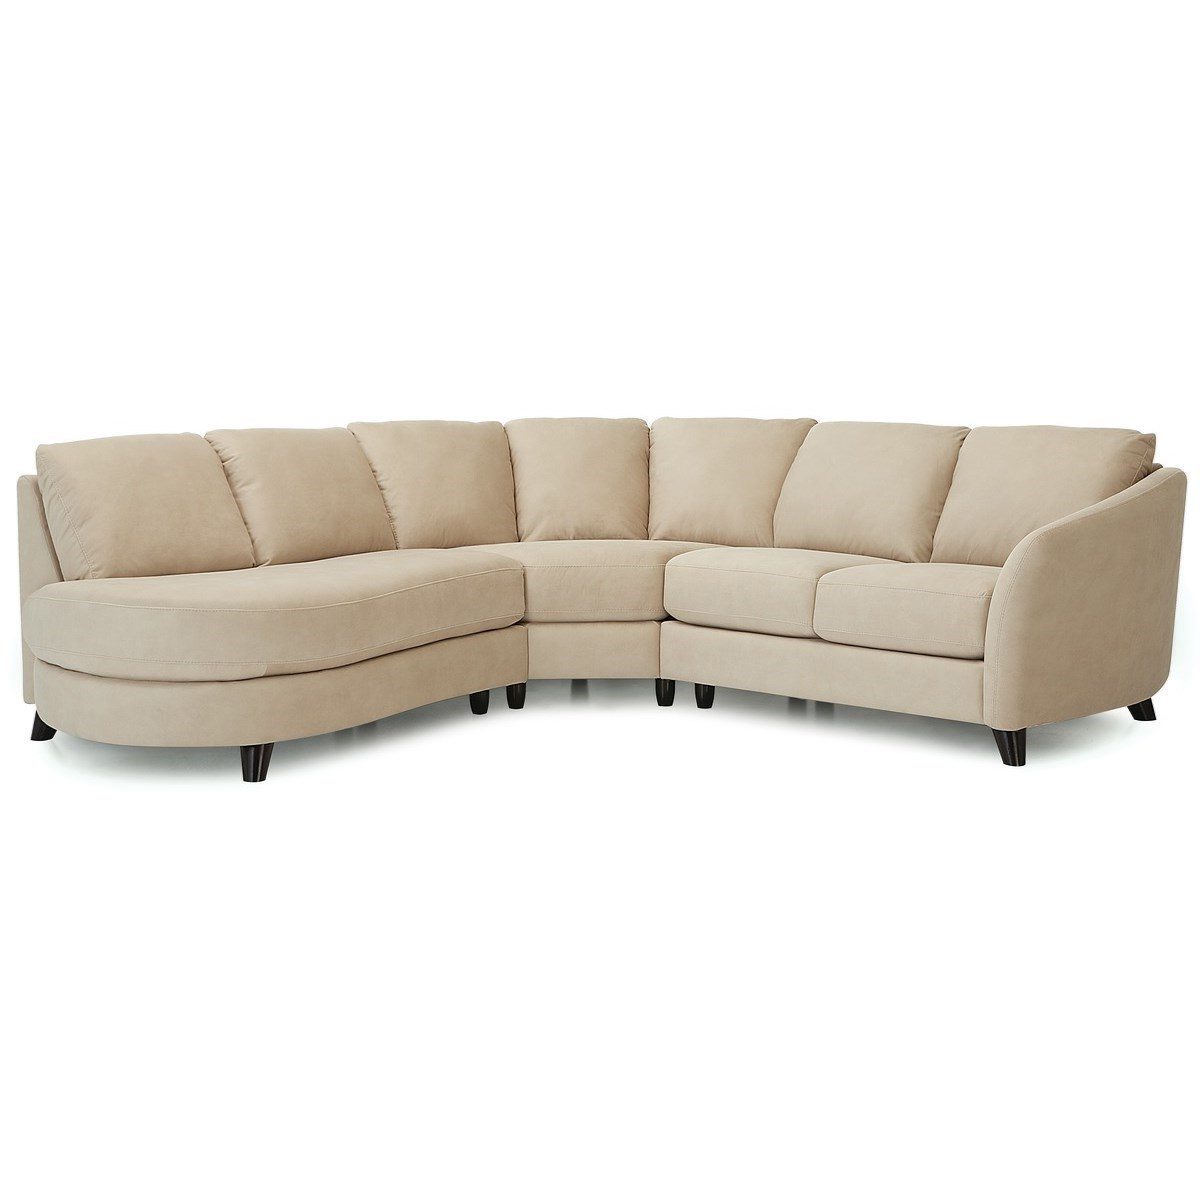 Alula 77427 Sectional Sofa by Palliser at Mueller Furniture